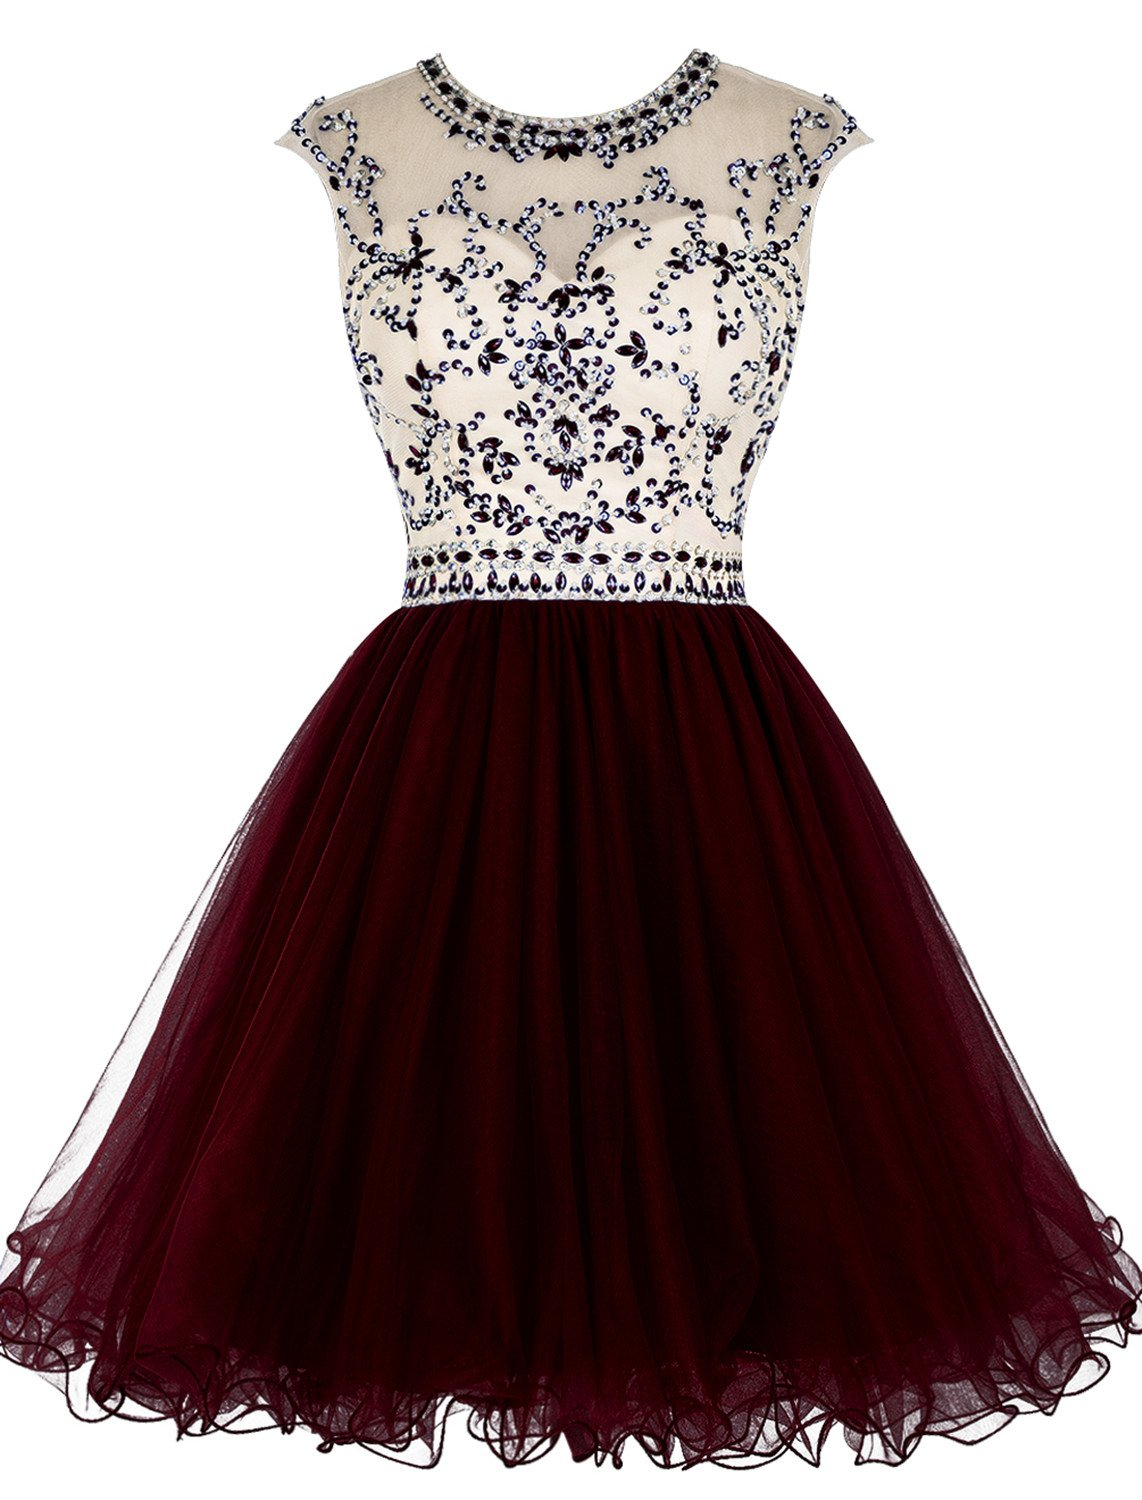 ALAGIRLS Beaded Prom Dress Short Tulle Homecoming Dress Hollow Back Burgundy US18Plus